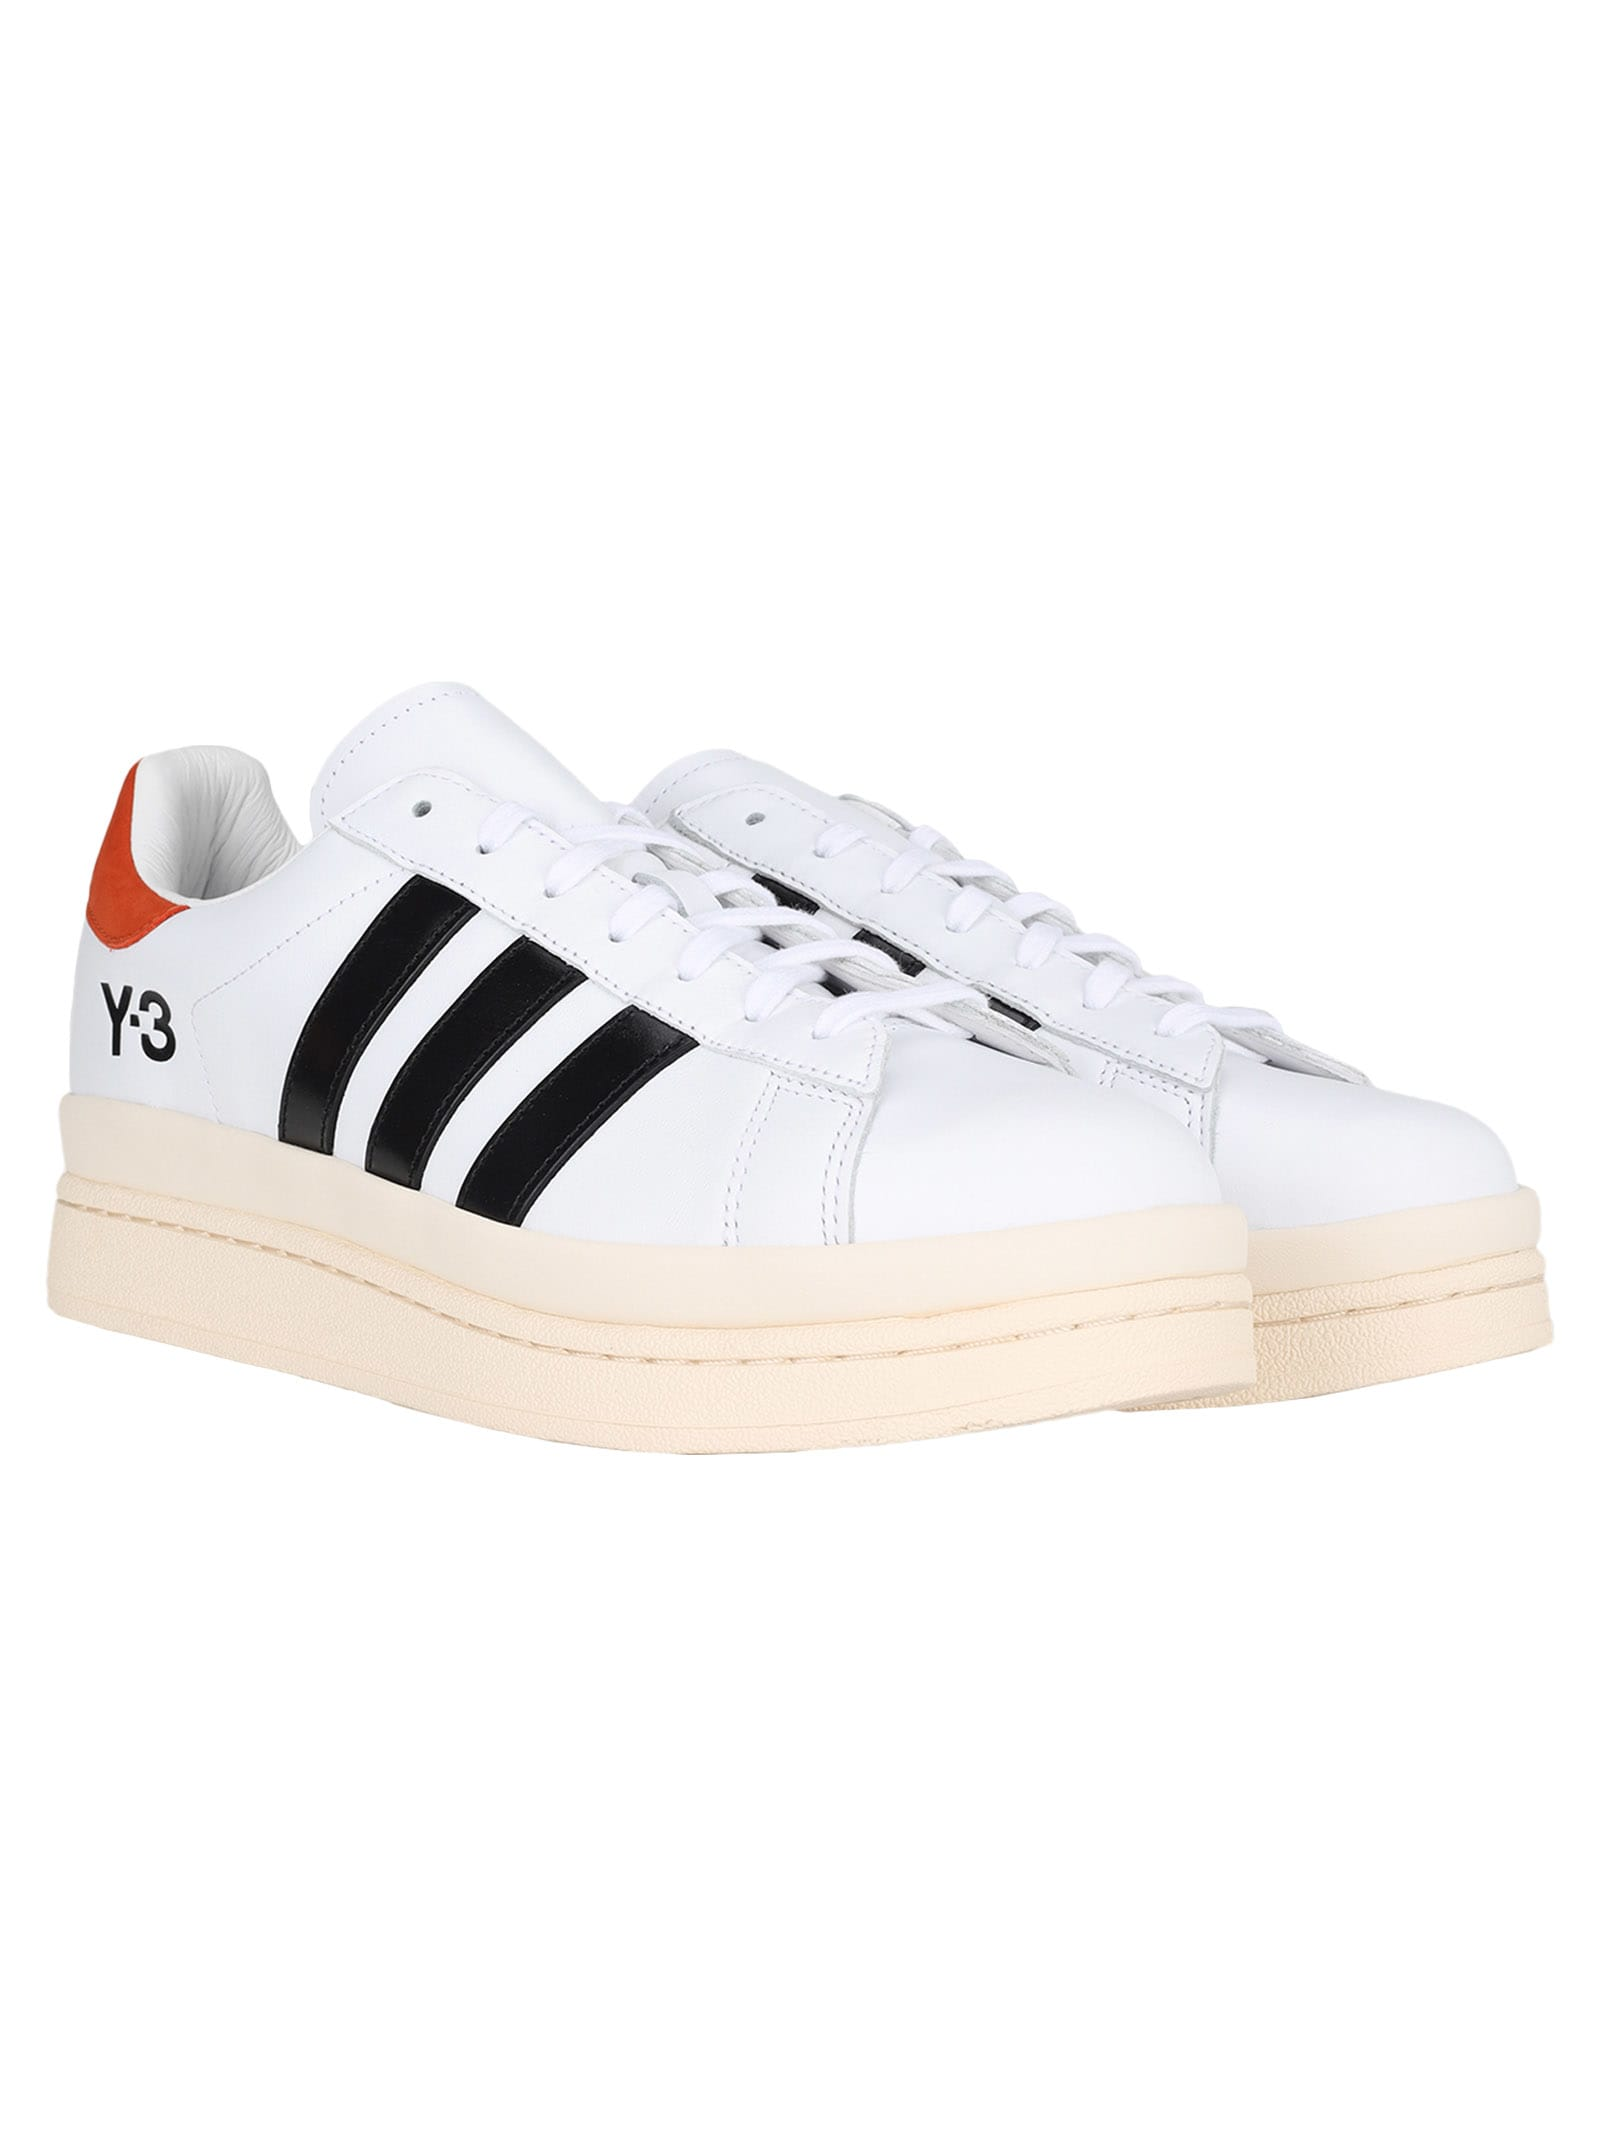 Cheap And Nice Adidas Y3 Hicho Low-top Sneakers - Great Deals